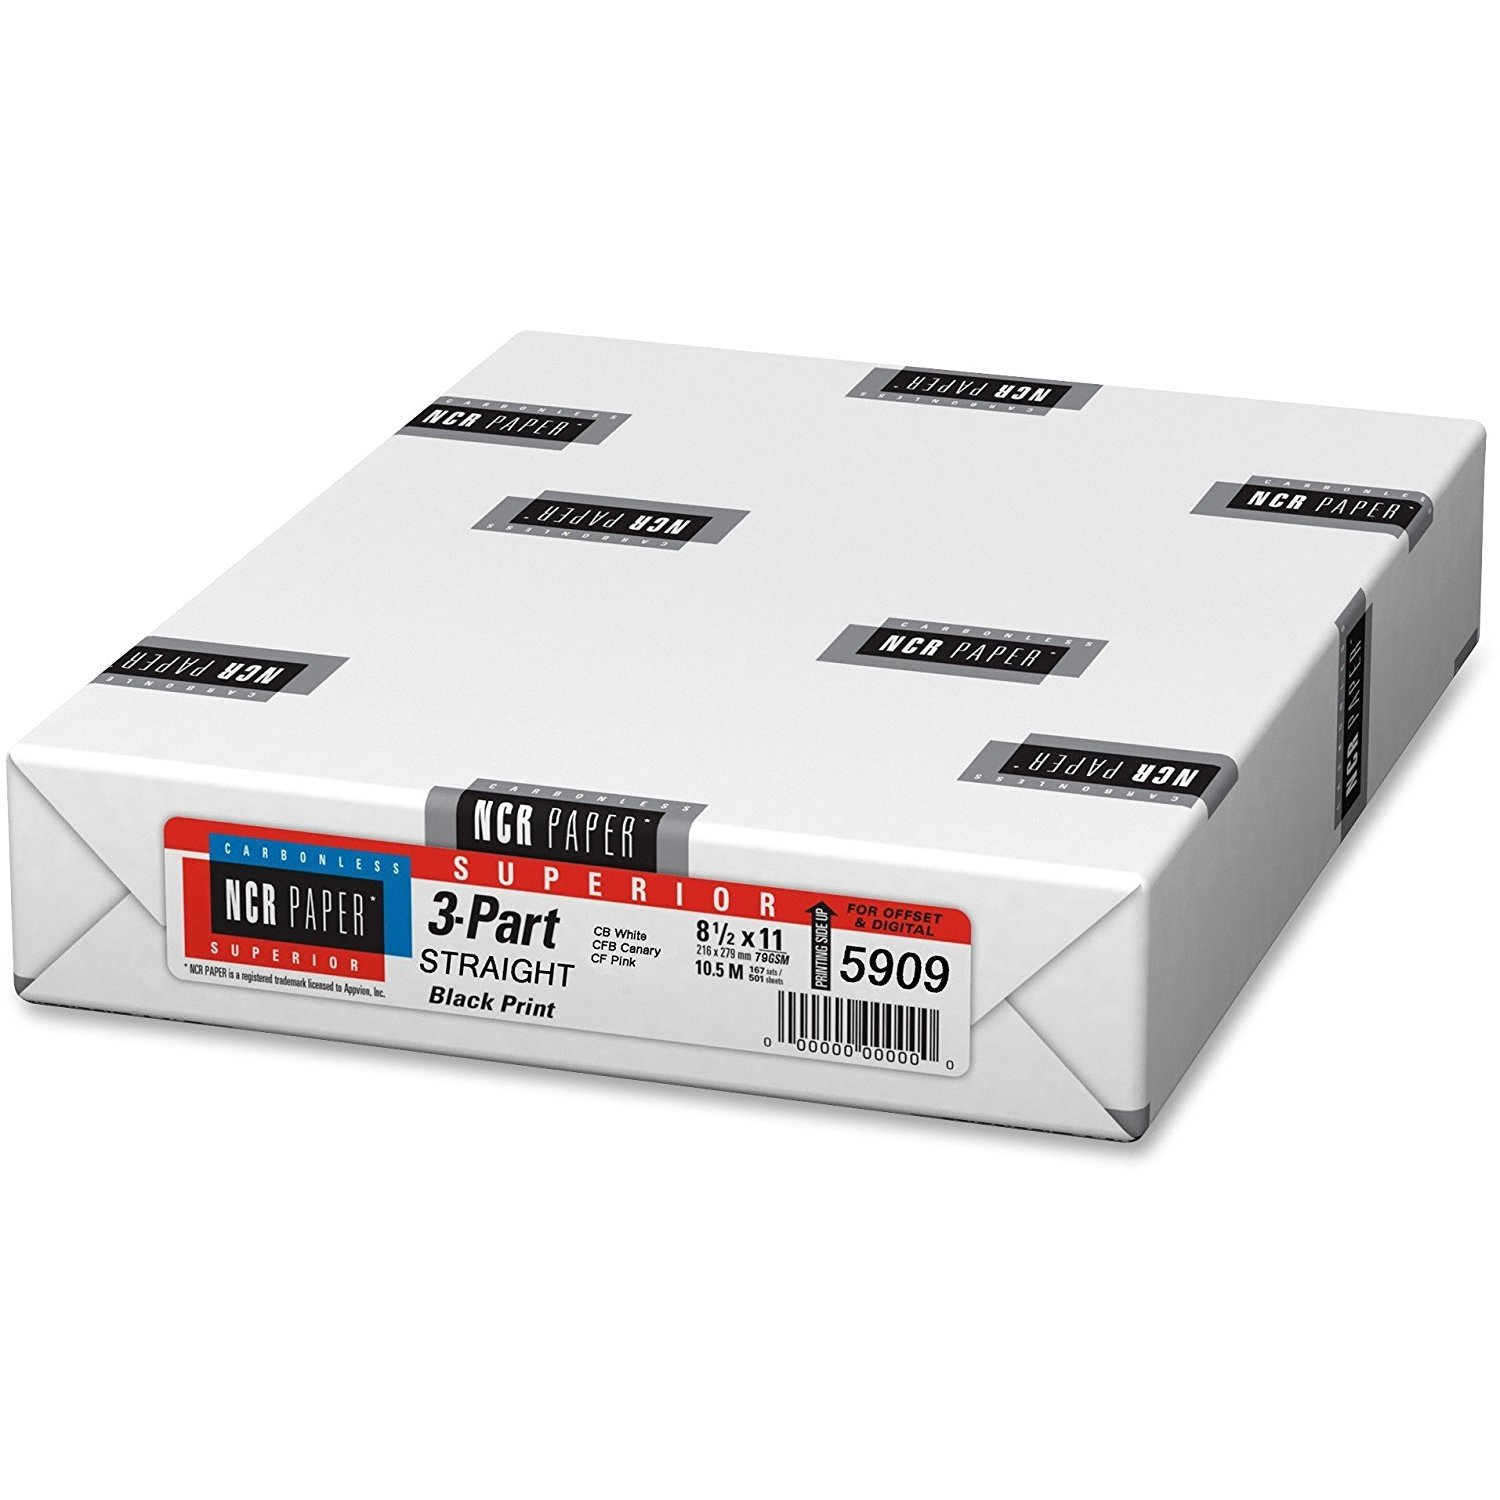 167 Sets of 3 Part NCR Paper 8.5 x 11 Straight Collated Carbonless Paper (5909) by Appvion, Inc